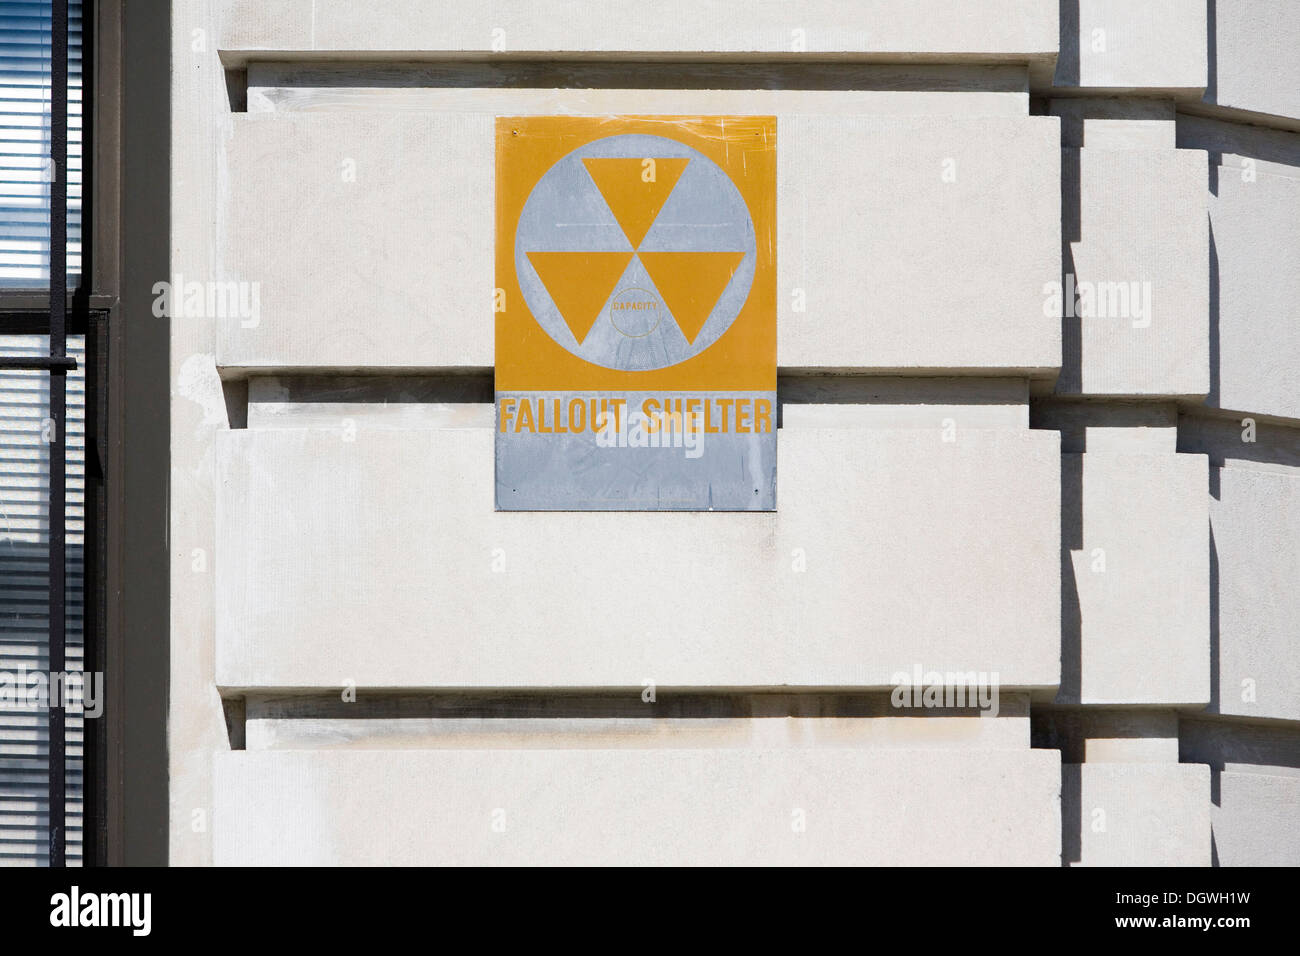 Sign on a facade in Harlem, indicating a fallout shelter, New York City, New York, USA, North America Stock Photo